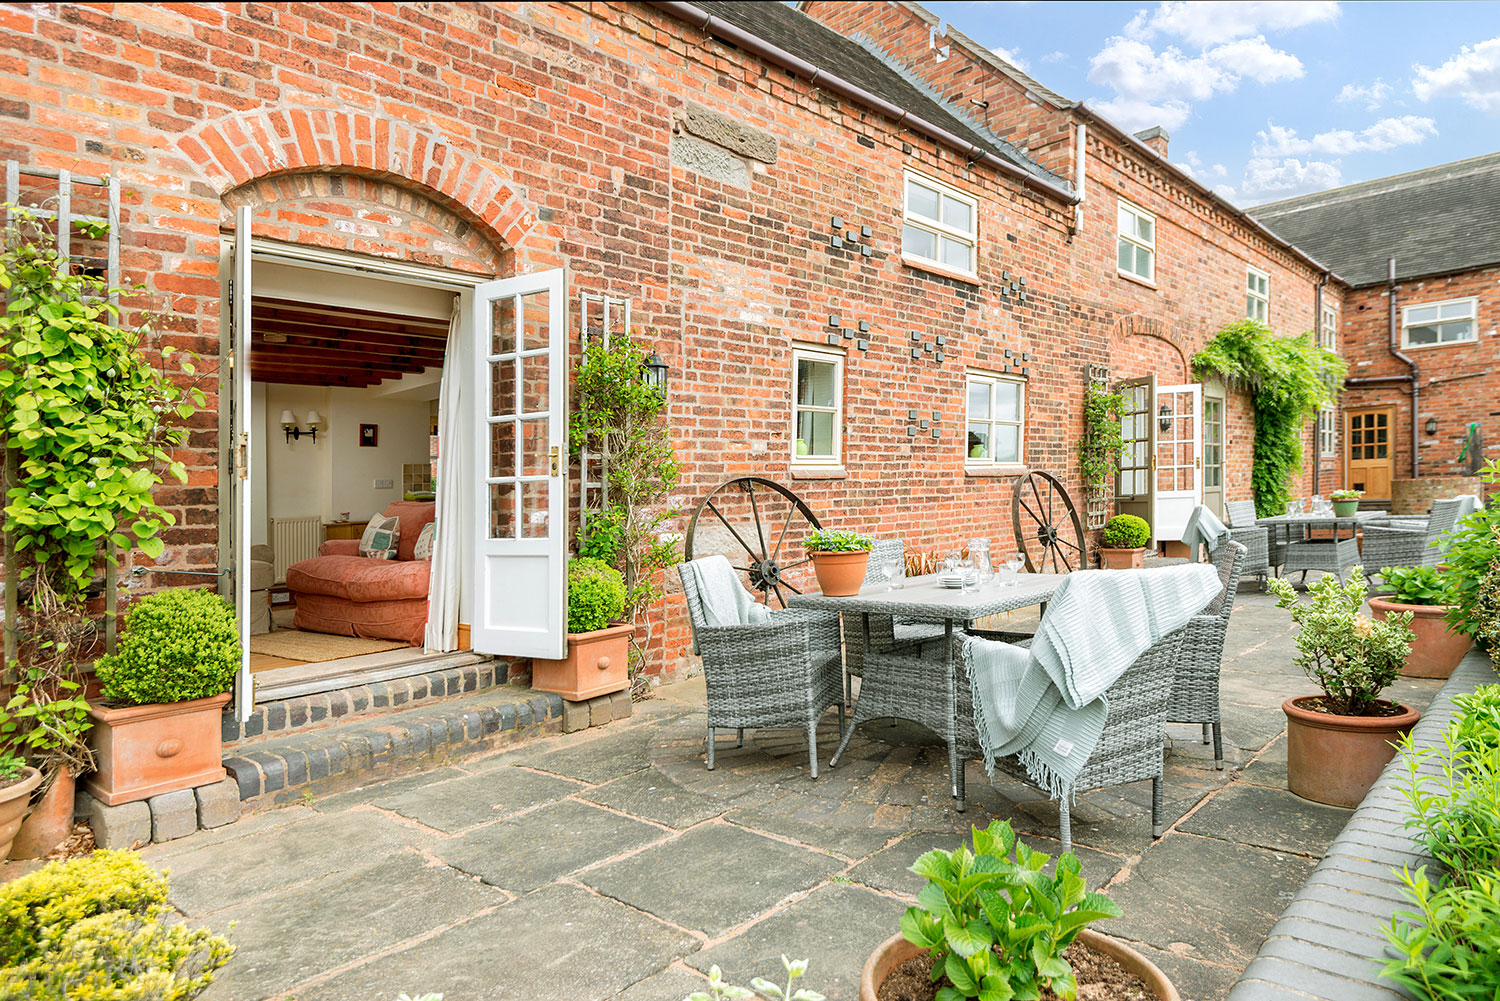 Enjoy the rustic charm at our luxury holiday cottages | Upper Rectory Farm Cottages